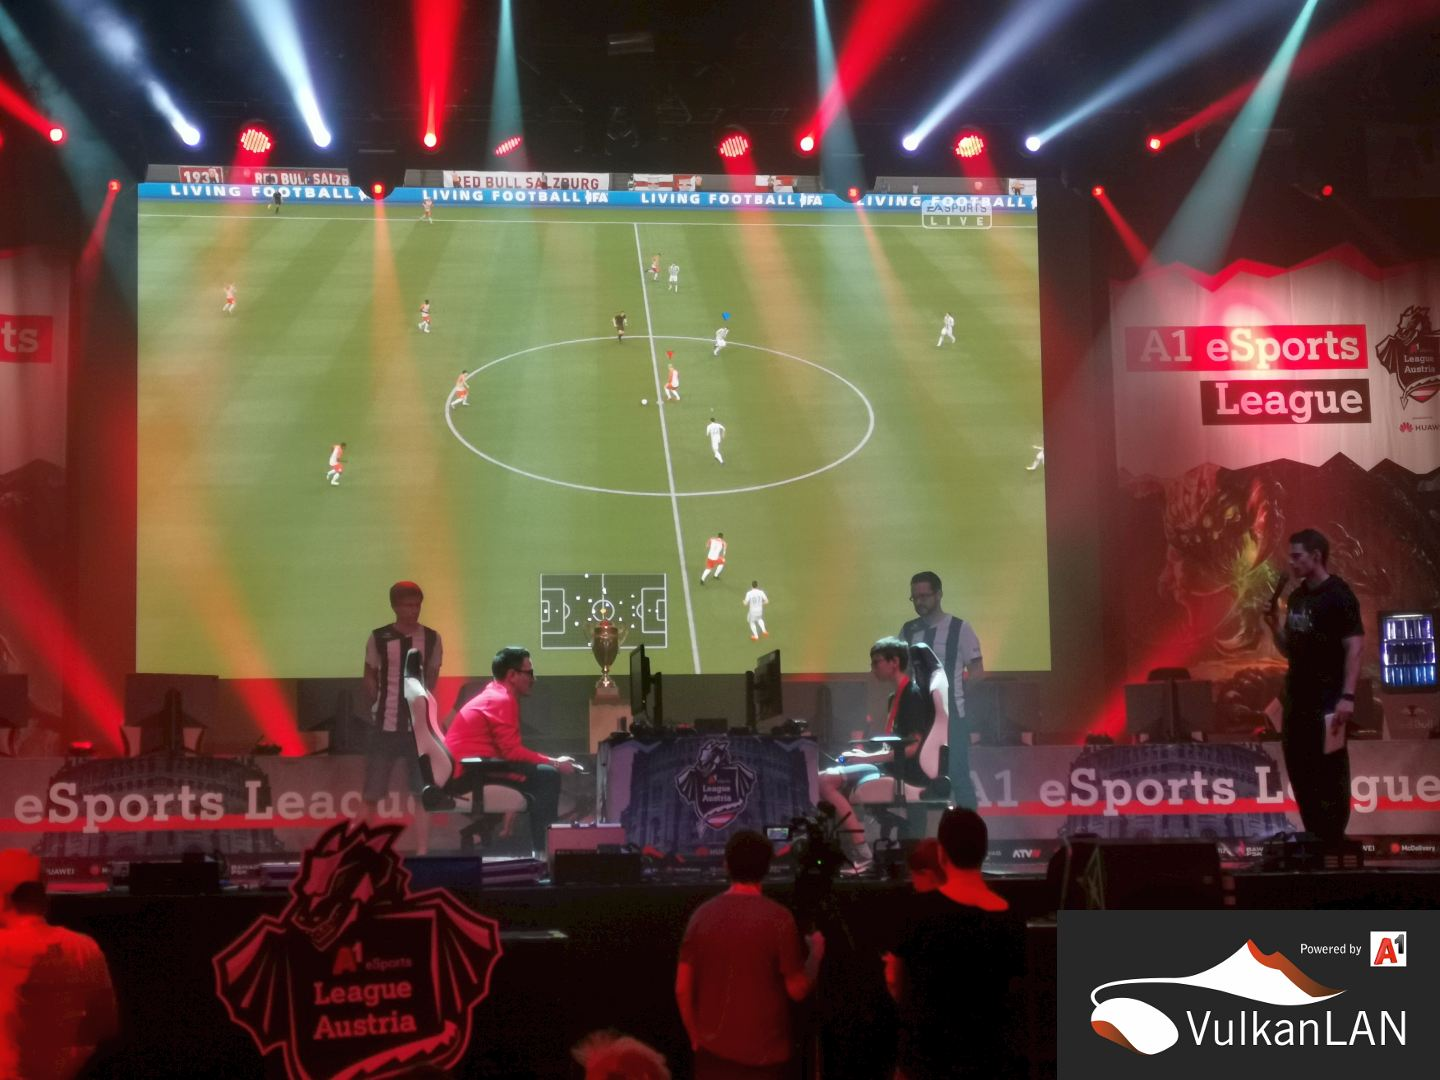 A1 E Sport Finale 2019 20190615 1639 40 IMG 20190615 163938 1440px